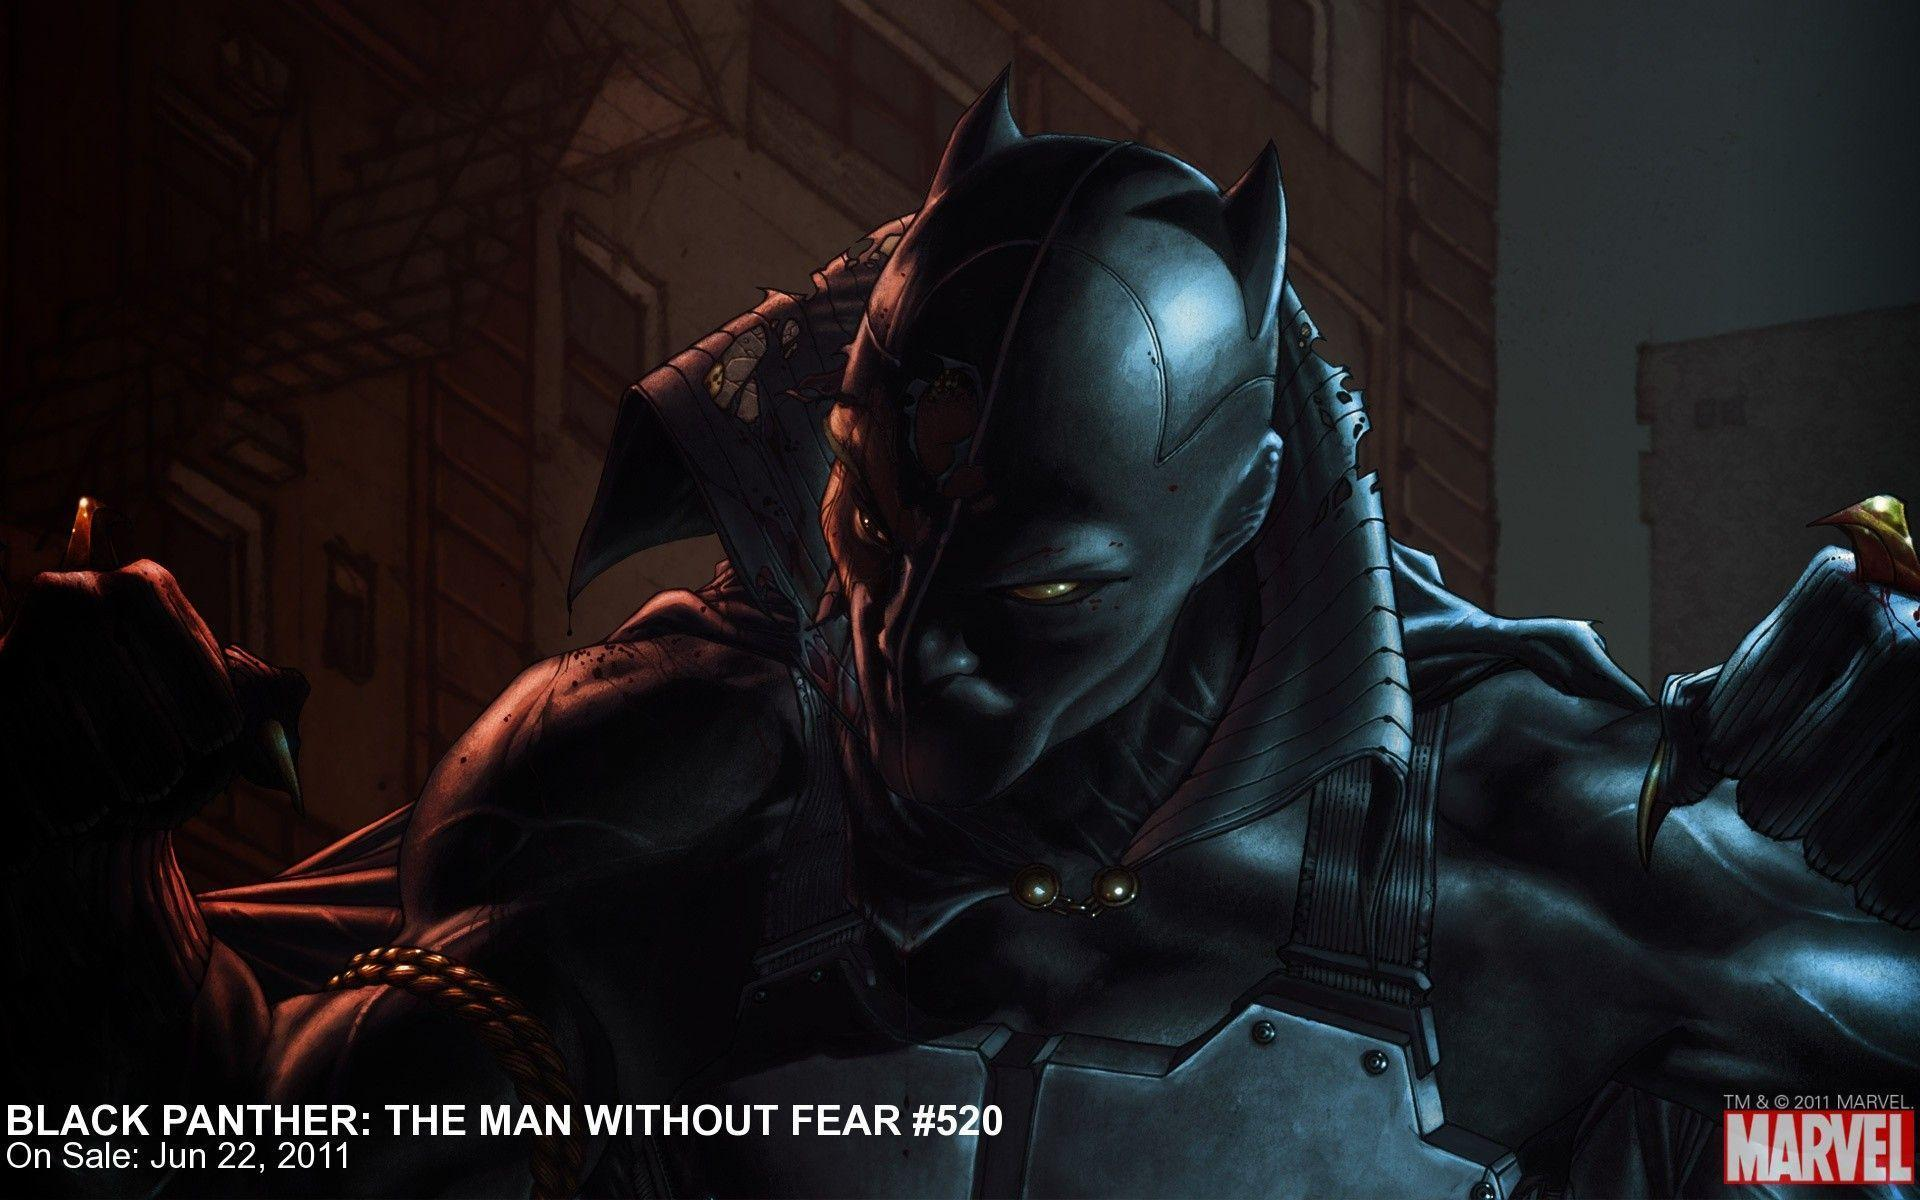 black panther movie download in english hd, black panther hd full movie